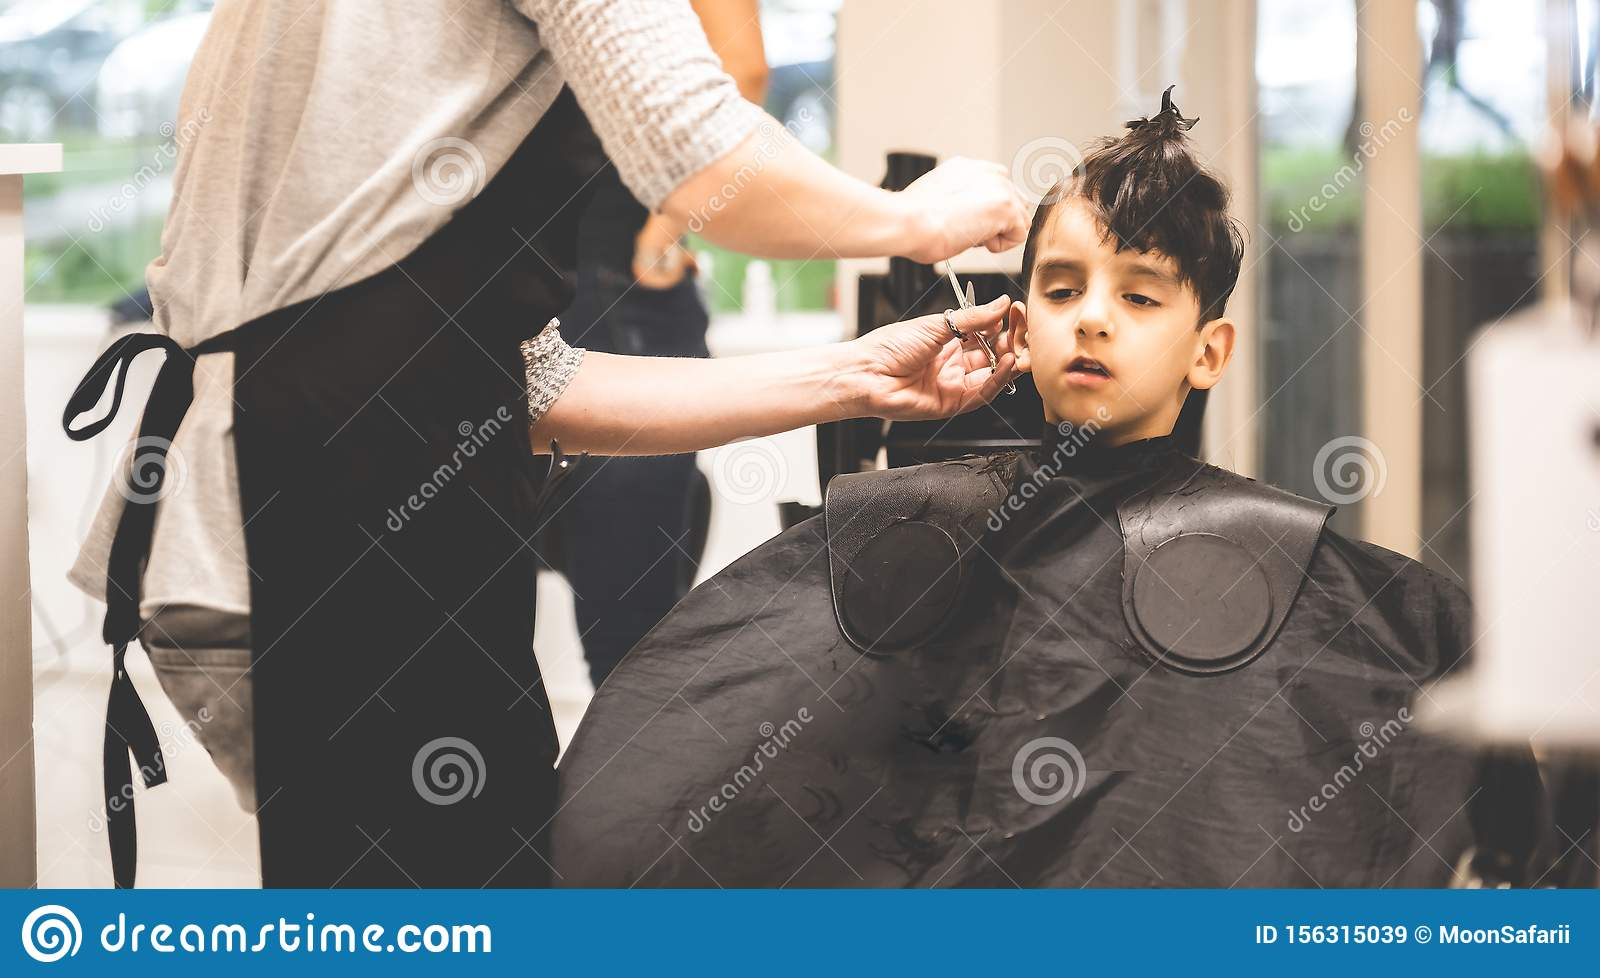 Hairdressers Hands Making Hairstyle To Child Little Boy In The Barber Shop Hair Cut Professional Little Boy In The Barber Shop Stock Image Image Of Childhood Client 156315039